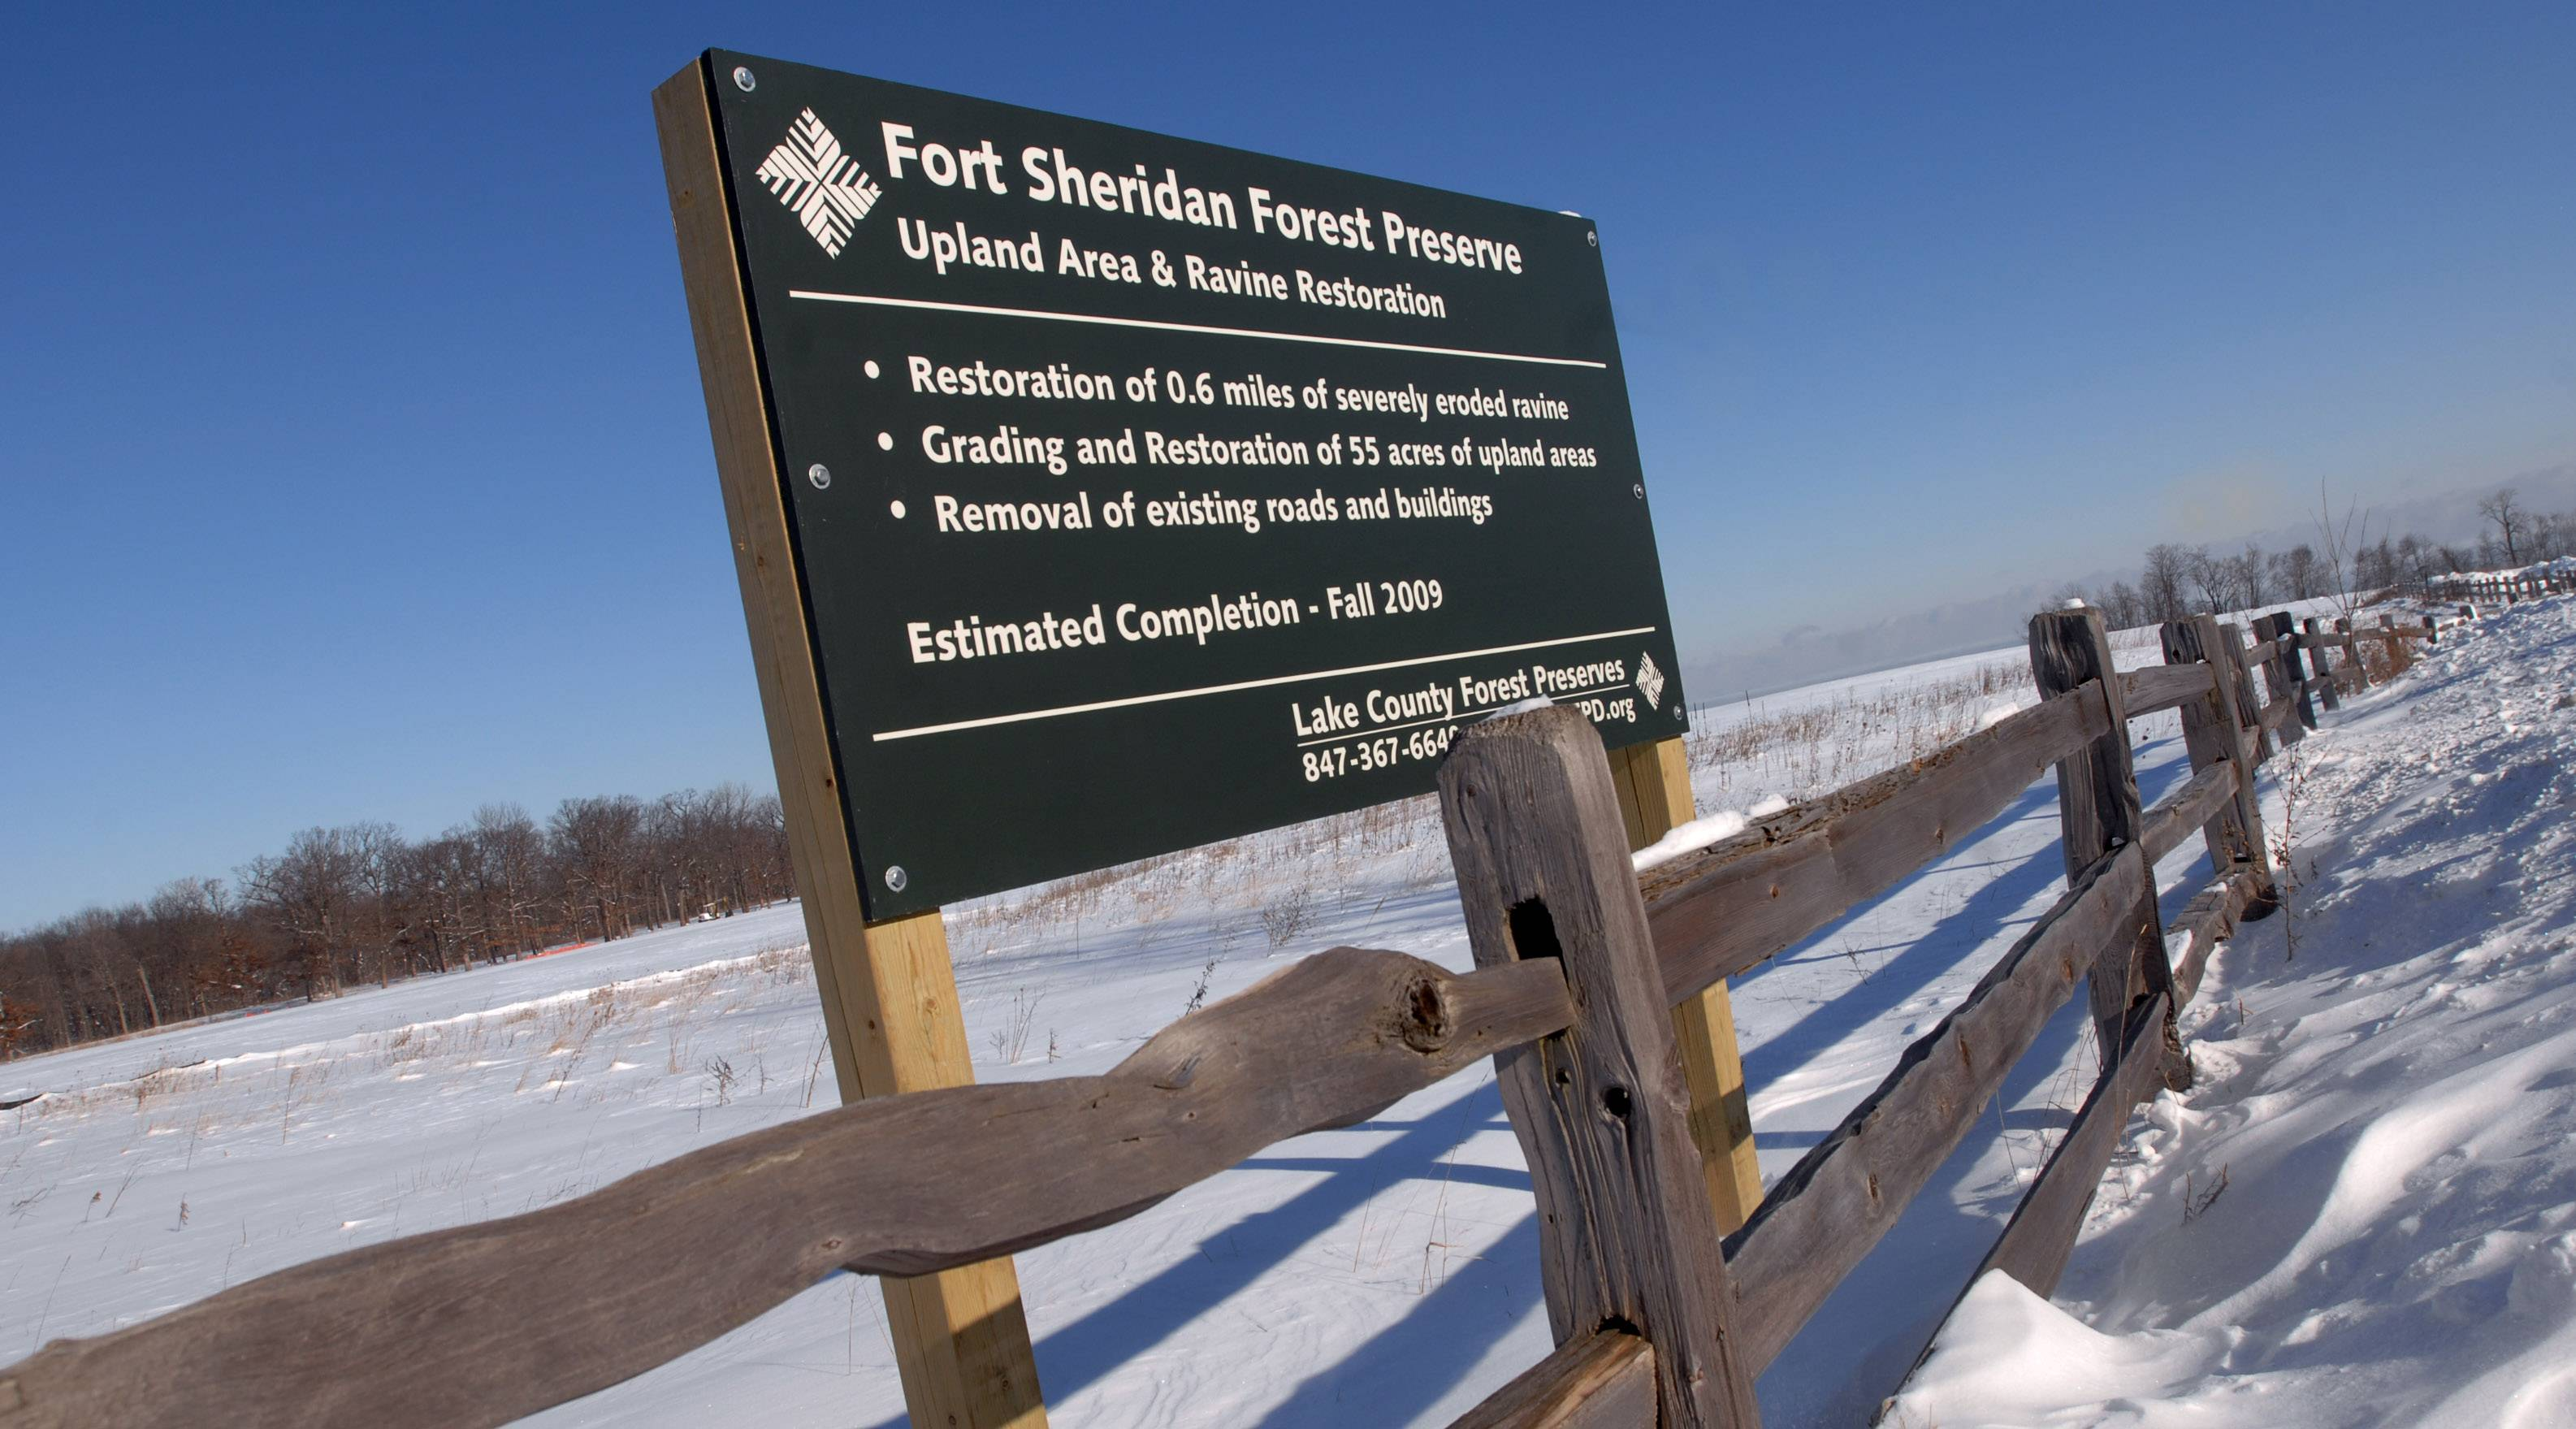 Lake County forest board may ask to abandon golf plans at Fort Sheridan